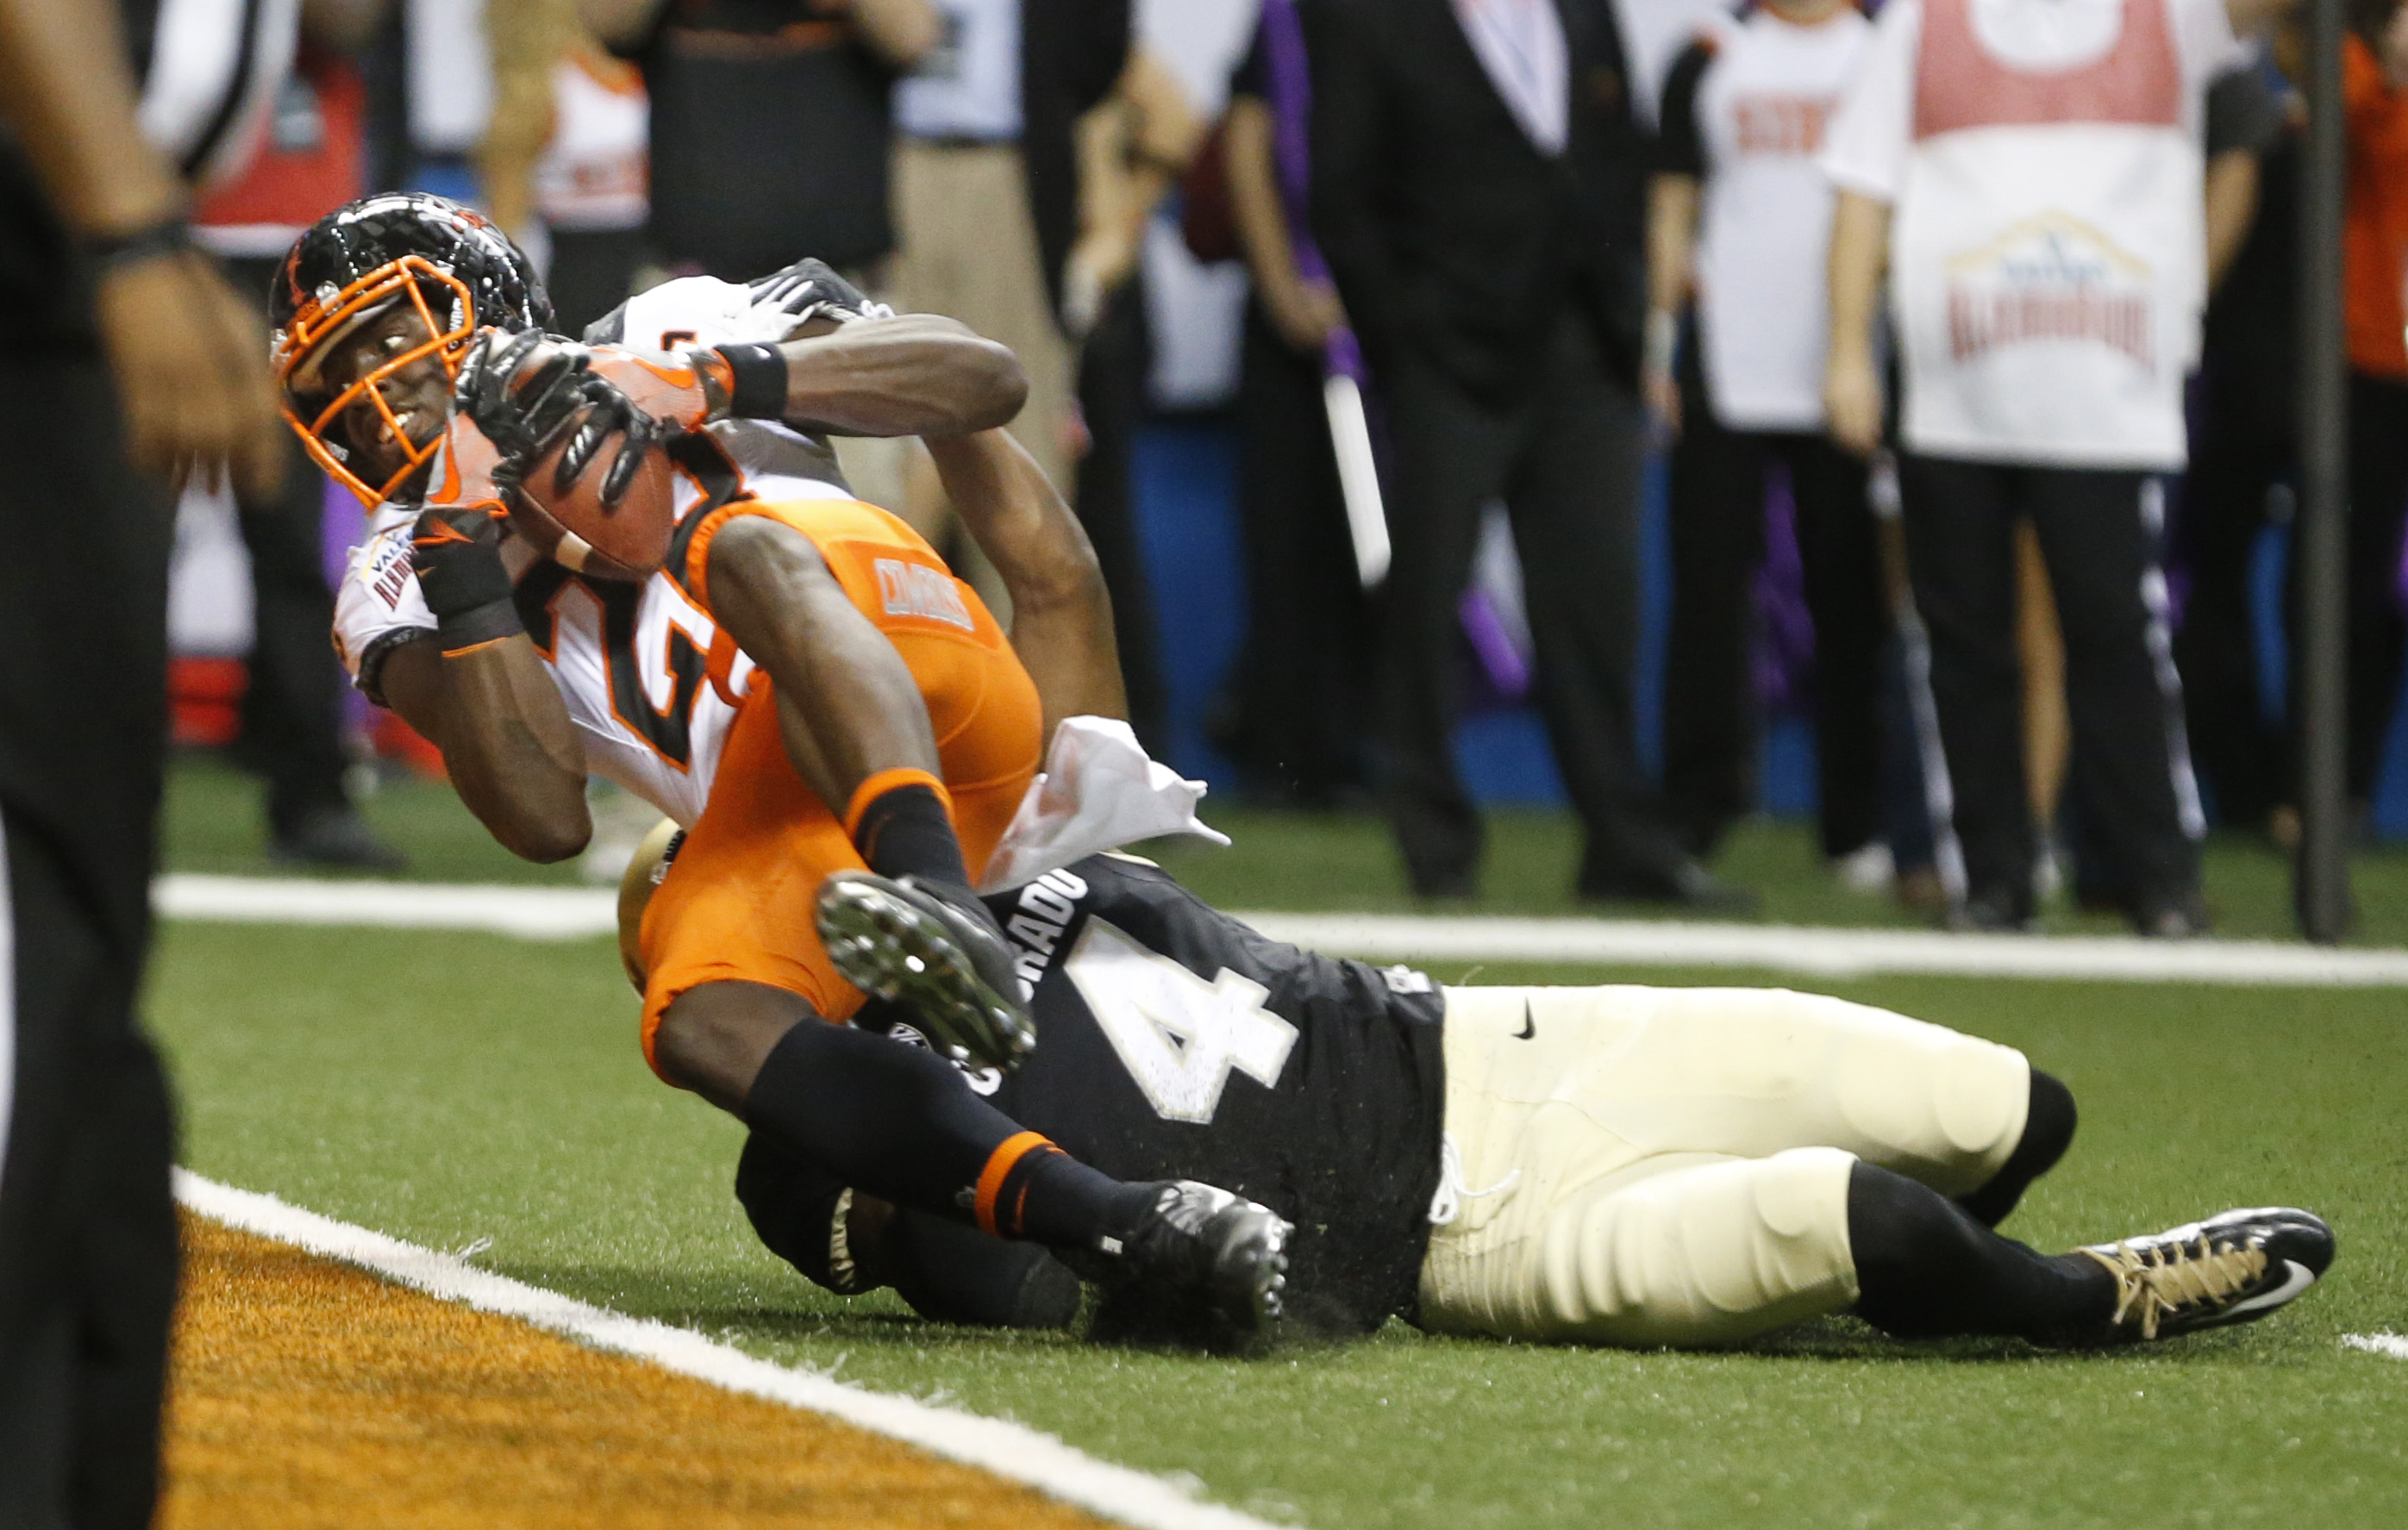 SAN ANTONIO,TX - DECEMBER 29: James Washington #28 of the Oklahoma State Cowboys catches a pass completion for their second touchdown as Chidobe Awuzie #4 of the Colorado Buffaloes defends in the Valero Alamo Bowl at the Alamodome on December 29, 2016 in San Antonio, Texas. (Photo by Ronald Cortes/Getty Images)